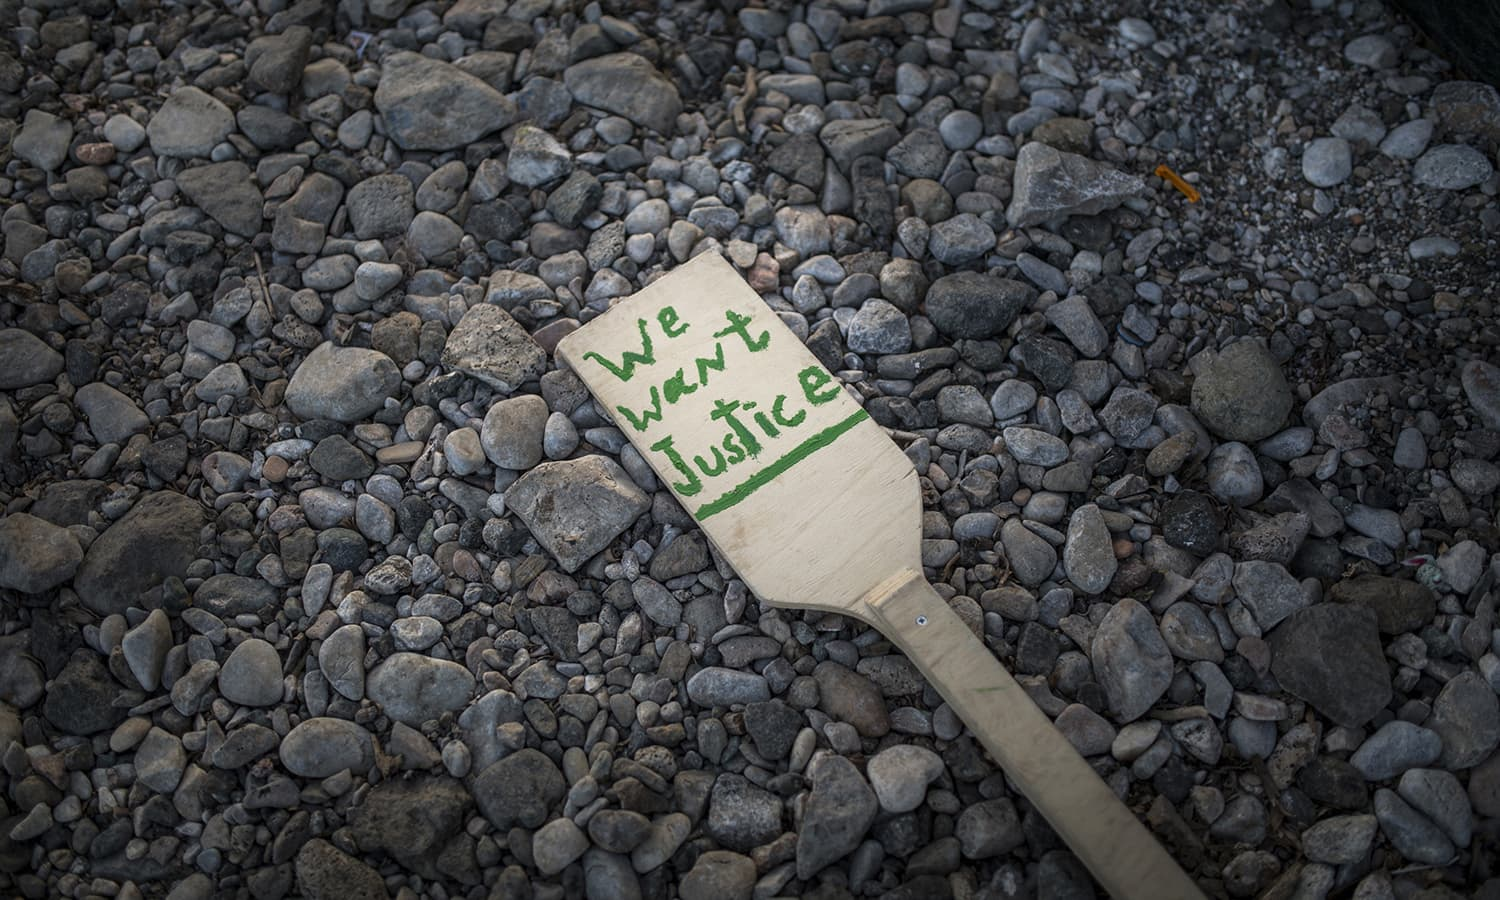 A protest sign at the No Borders camp on the island of Lesbos on April 7, 2016. Although already warned they would be transferred to a detention center on the island, they've been granted a reprieve by the local mayor for an additional week.